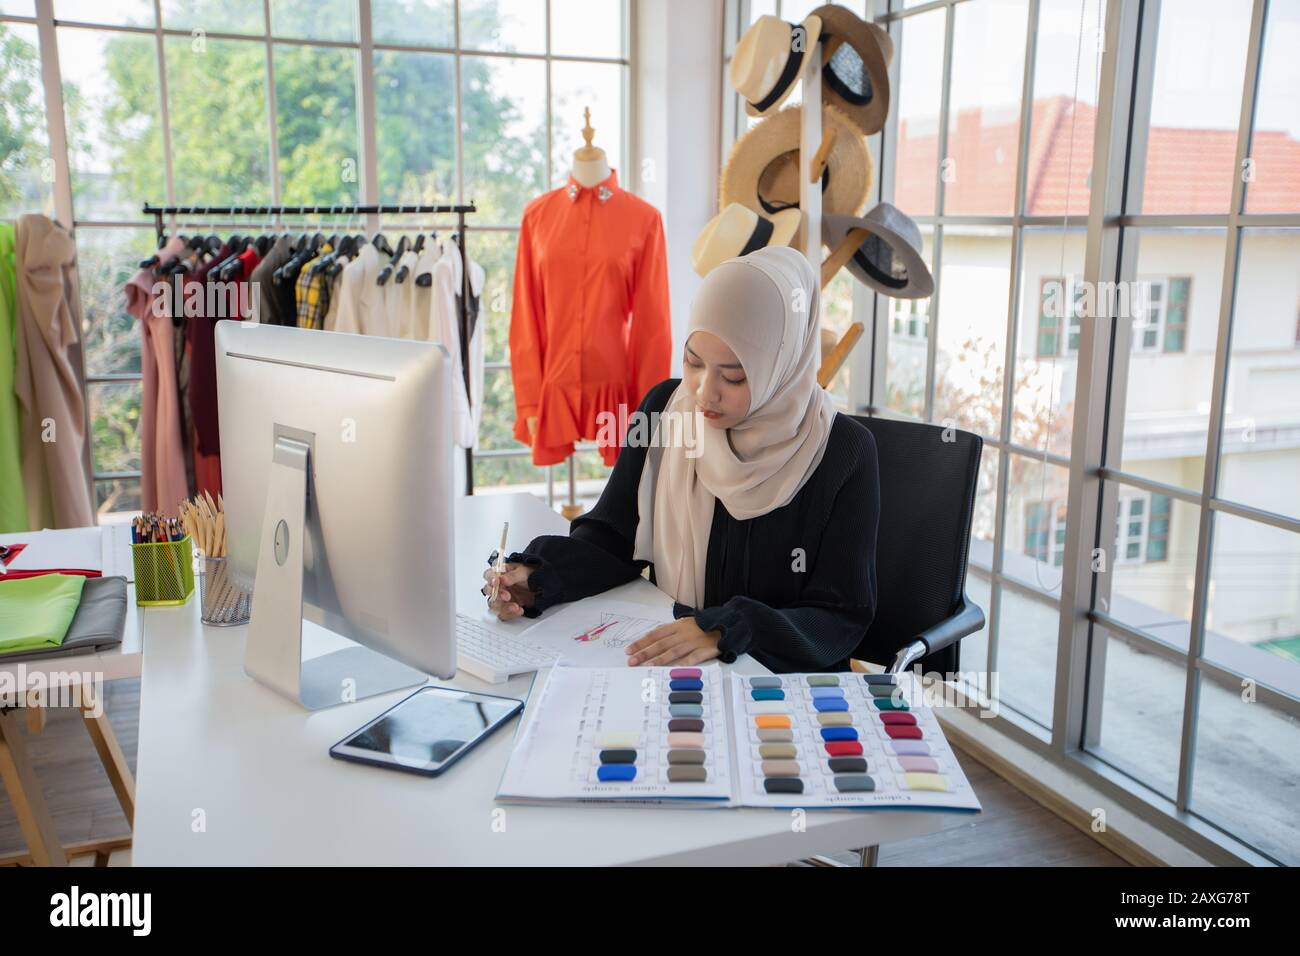 Muslim Fashion Designer High Resolution Stock Photography And Images Alamy